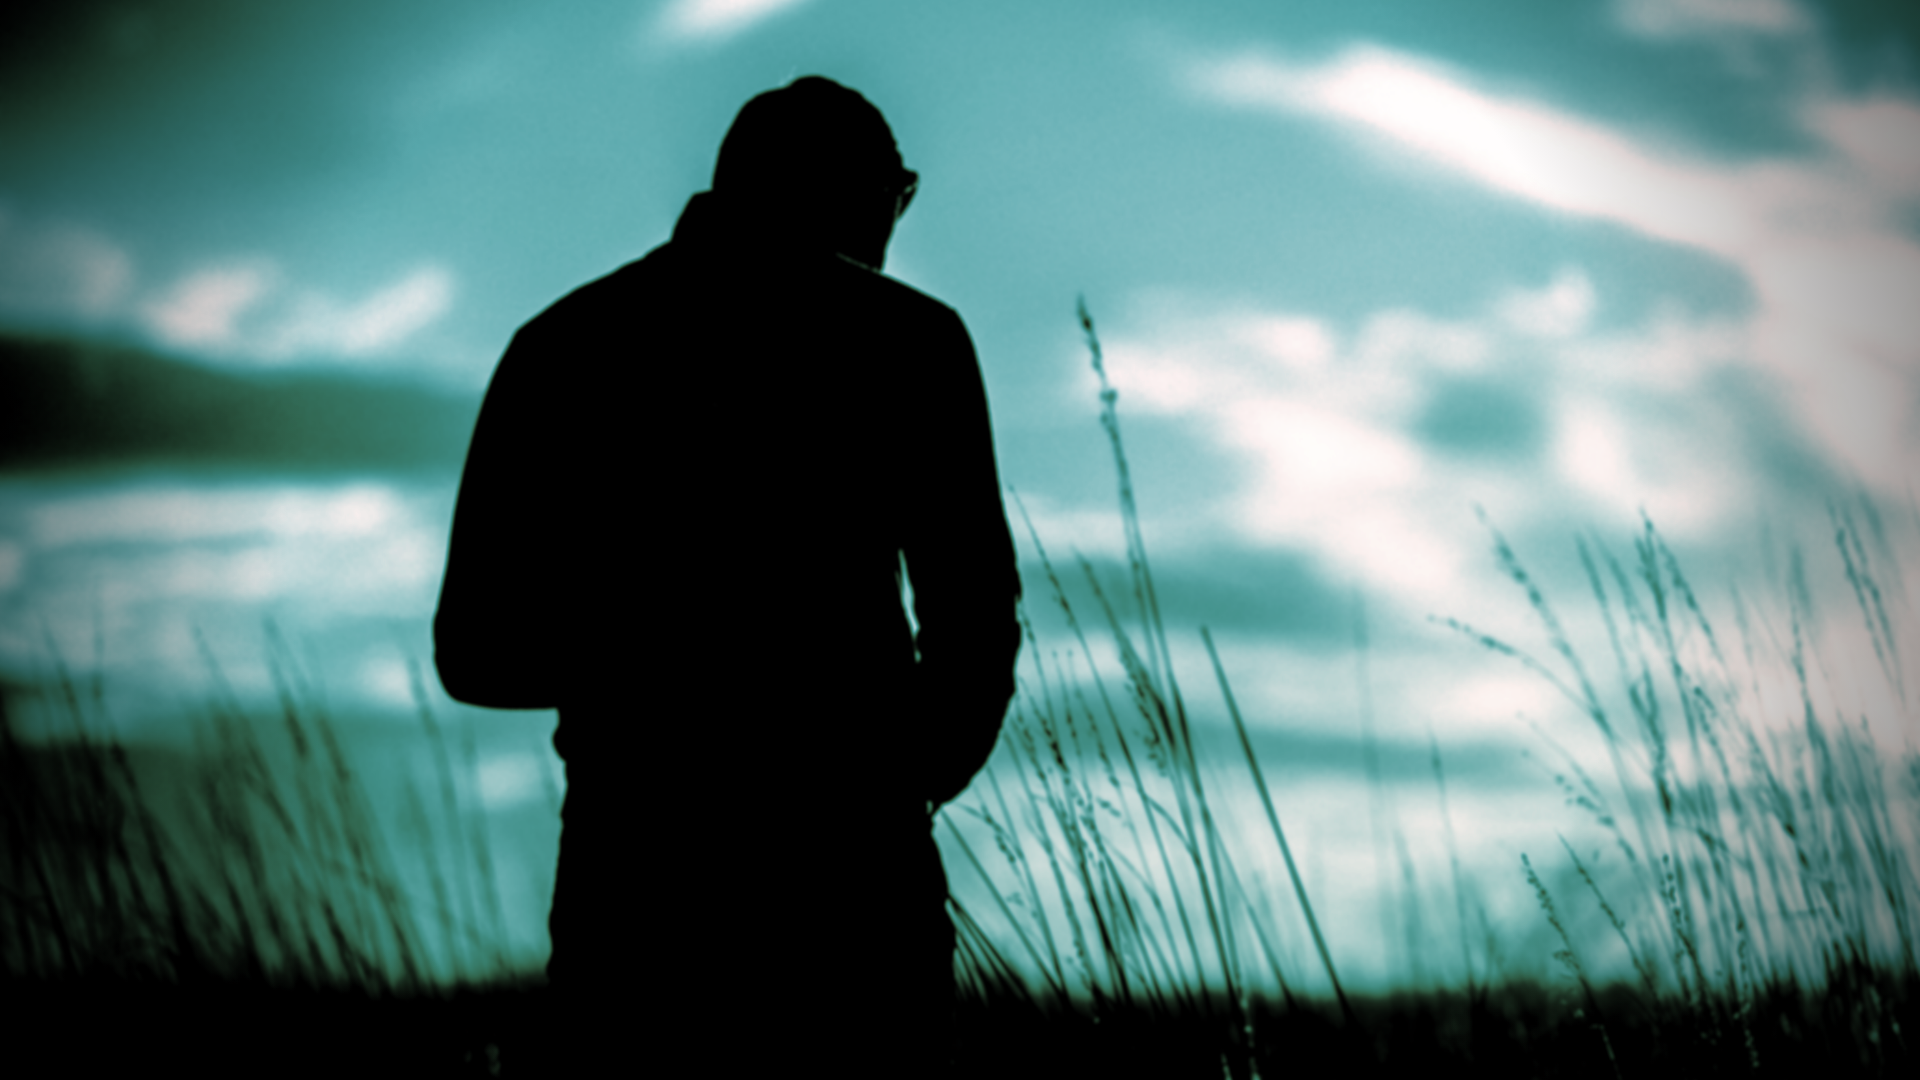 A man, head bowed and facing away, silhouetted against a dramatic sky.